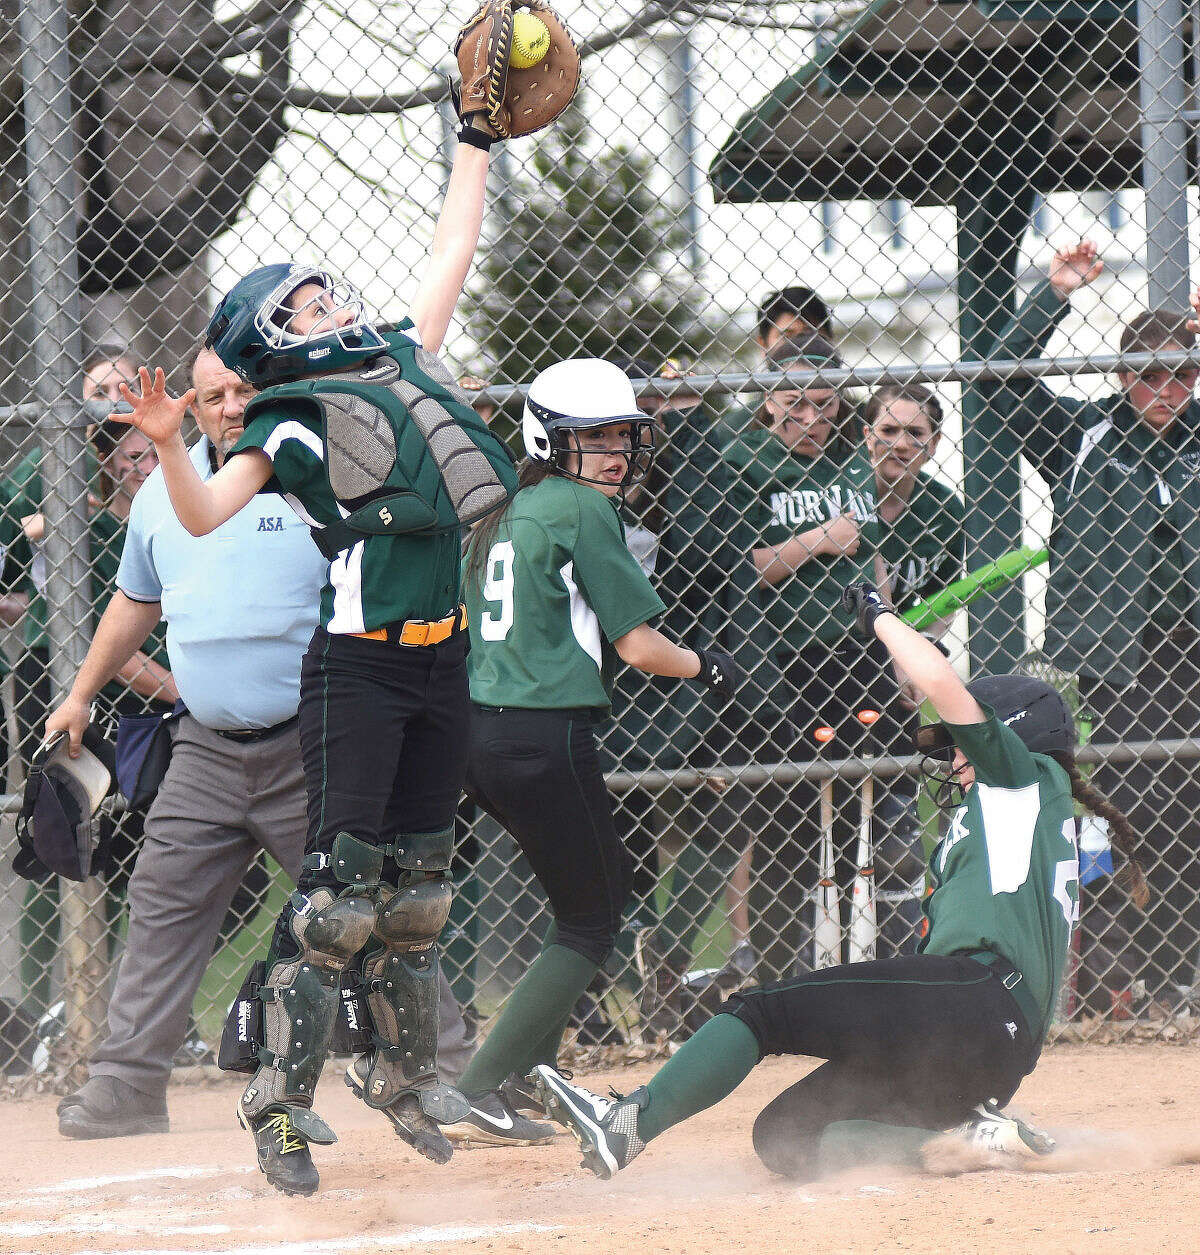 Norwalk's Katie Sciglimpaglia slides into home plate safely in the Bears' 9-8 win over Trinity Catholic on Wednesday. (John Nash/Hour photo)